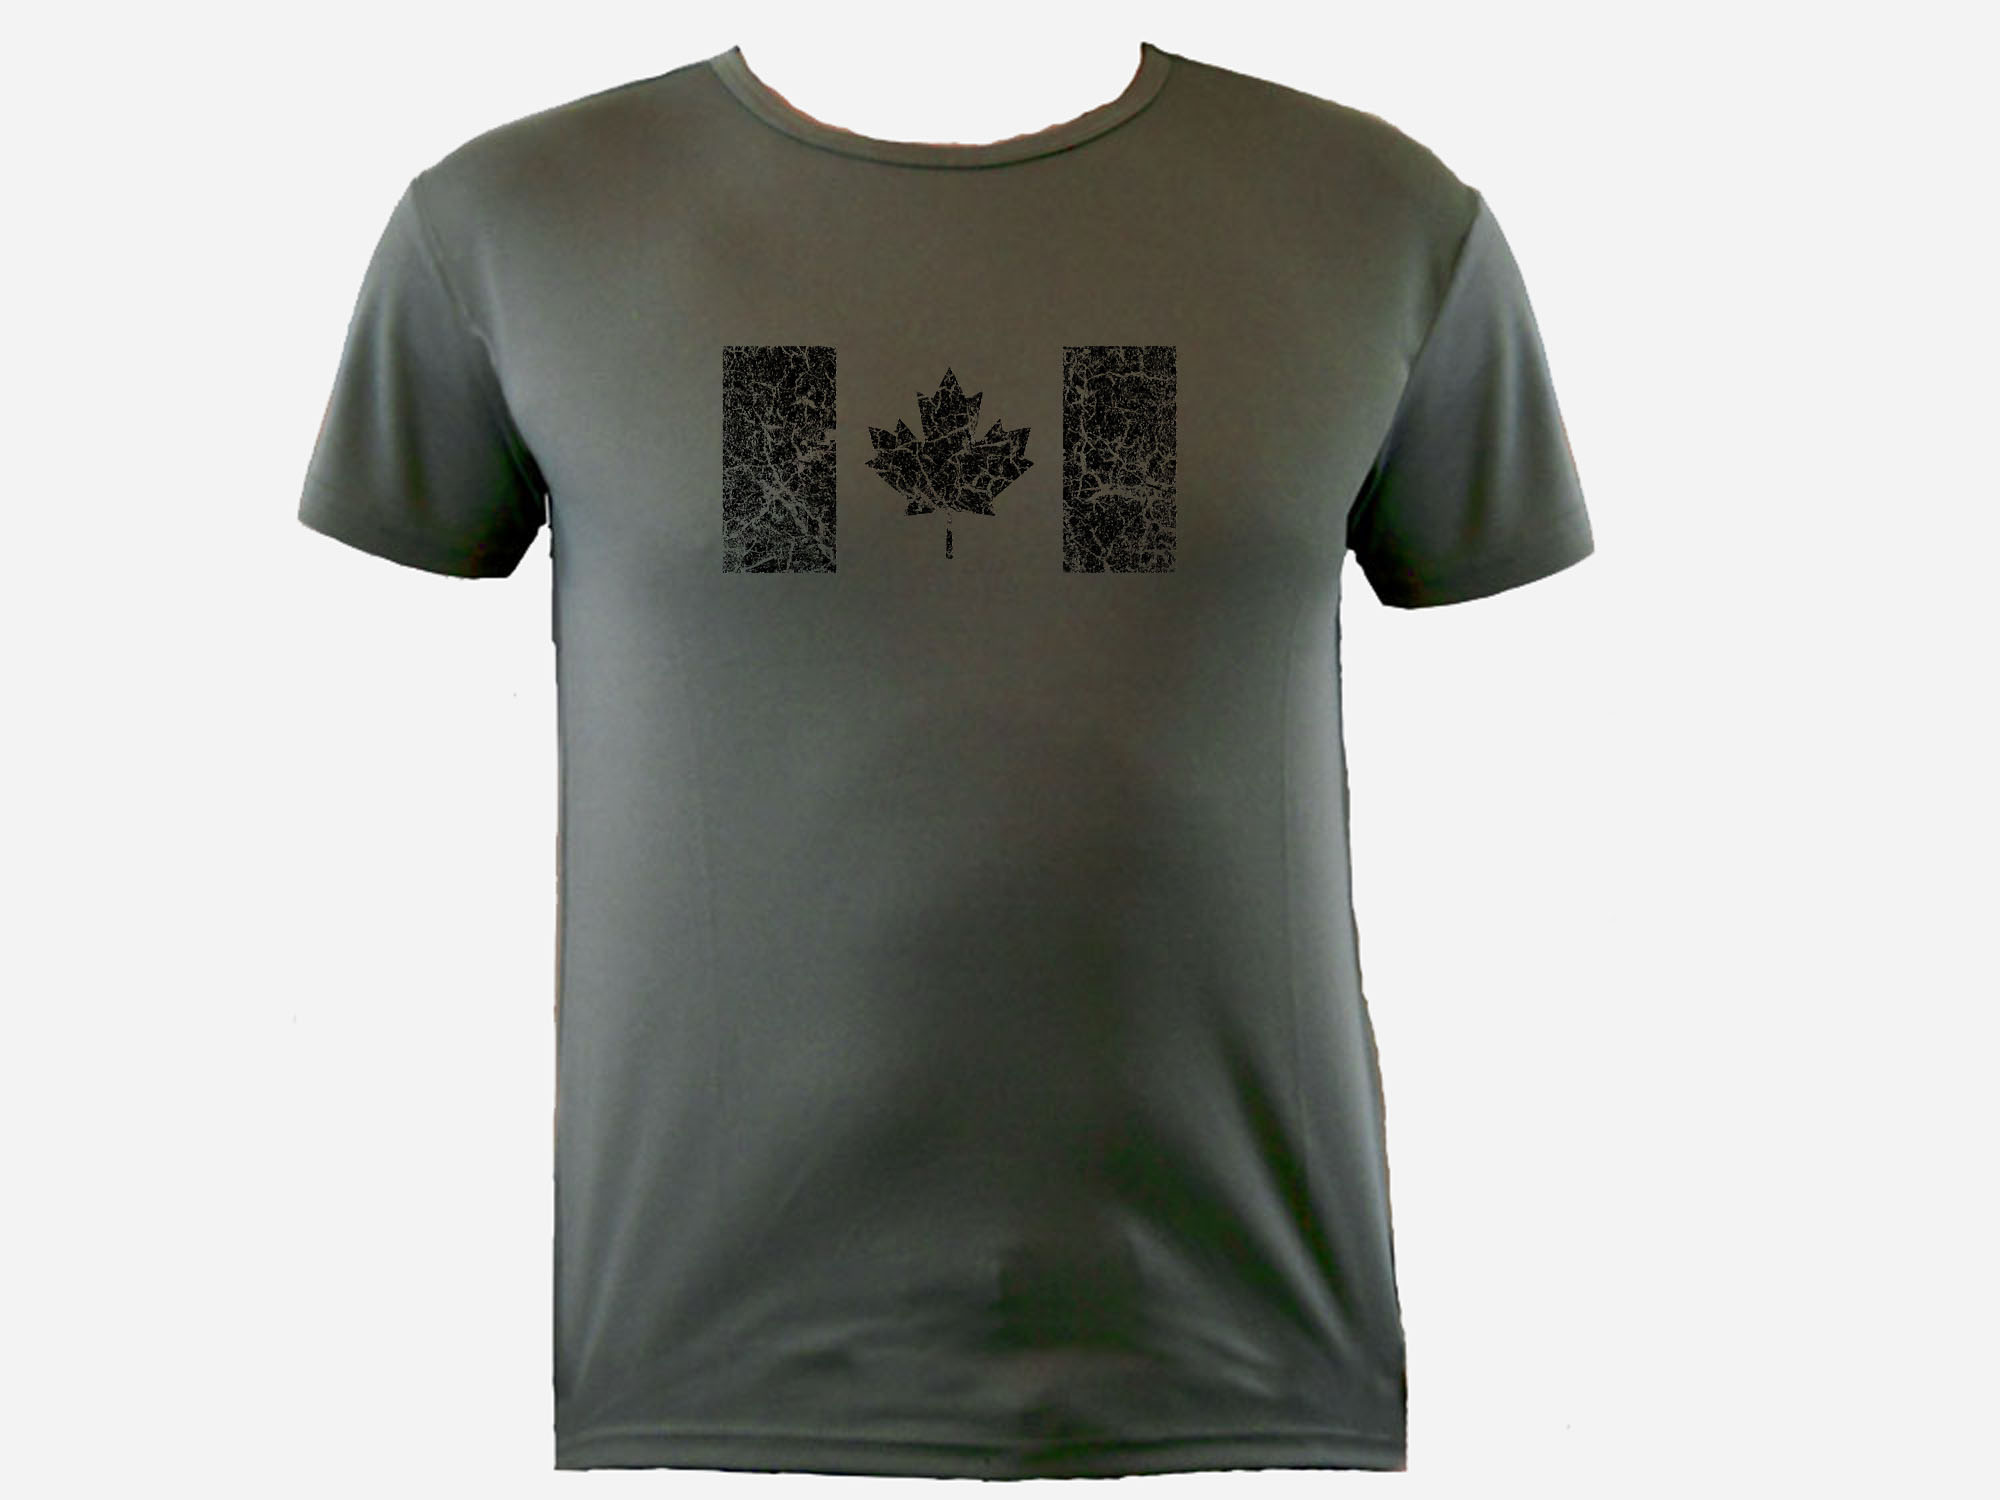 Canadian tee shirts - My Cool T-Shirt